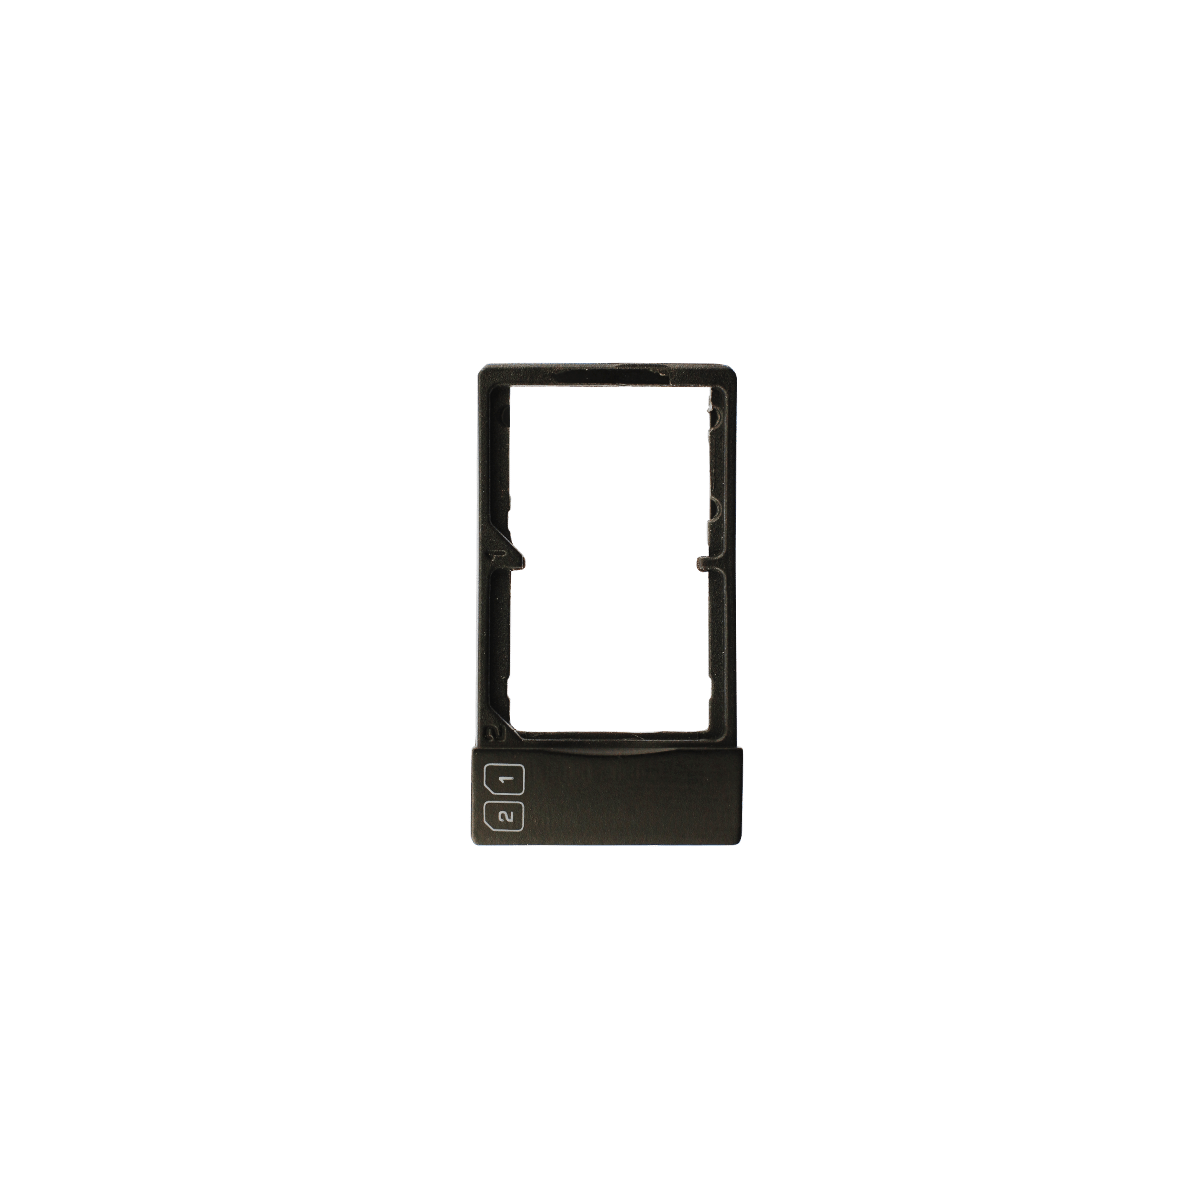 OnePlus 2 SIM Card Tray Replacement